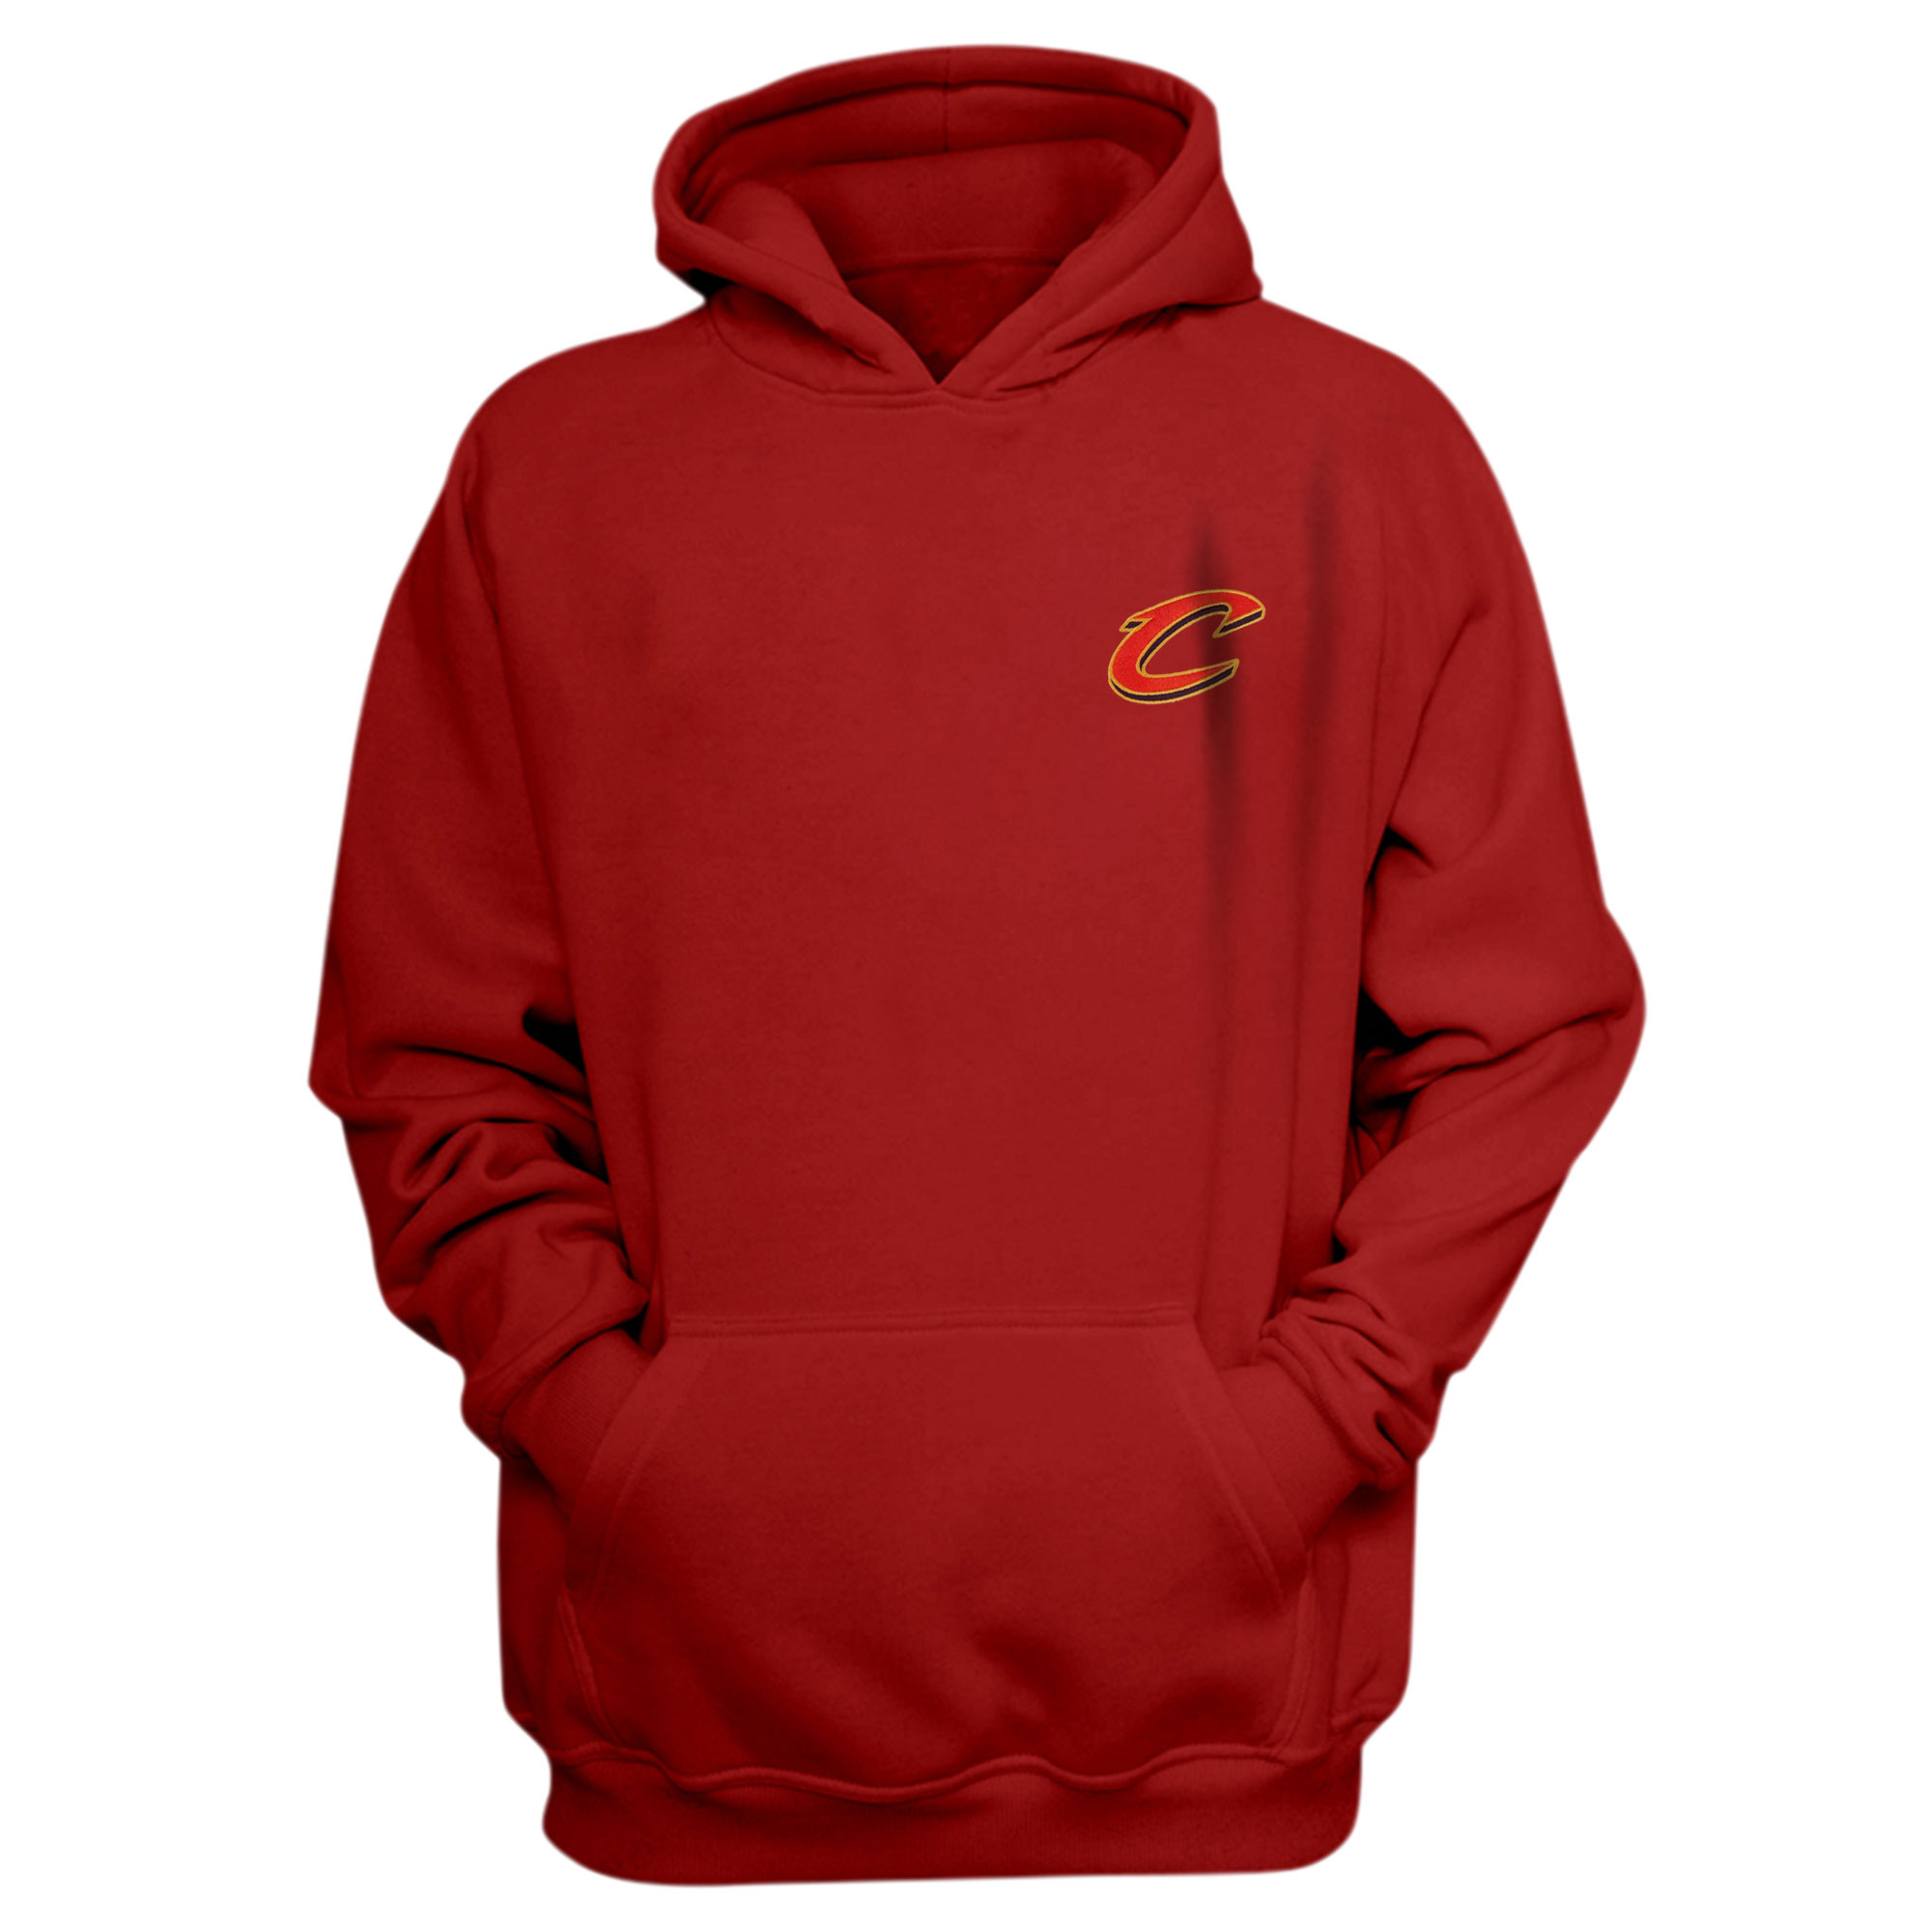 Cleveland Cavaliers Hoodie (Örme)  (HD-RED-EMBR-CLEVELAND)